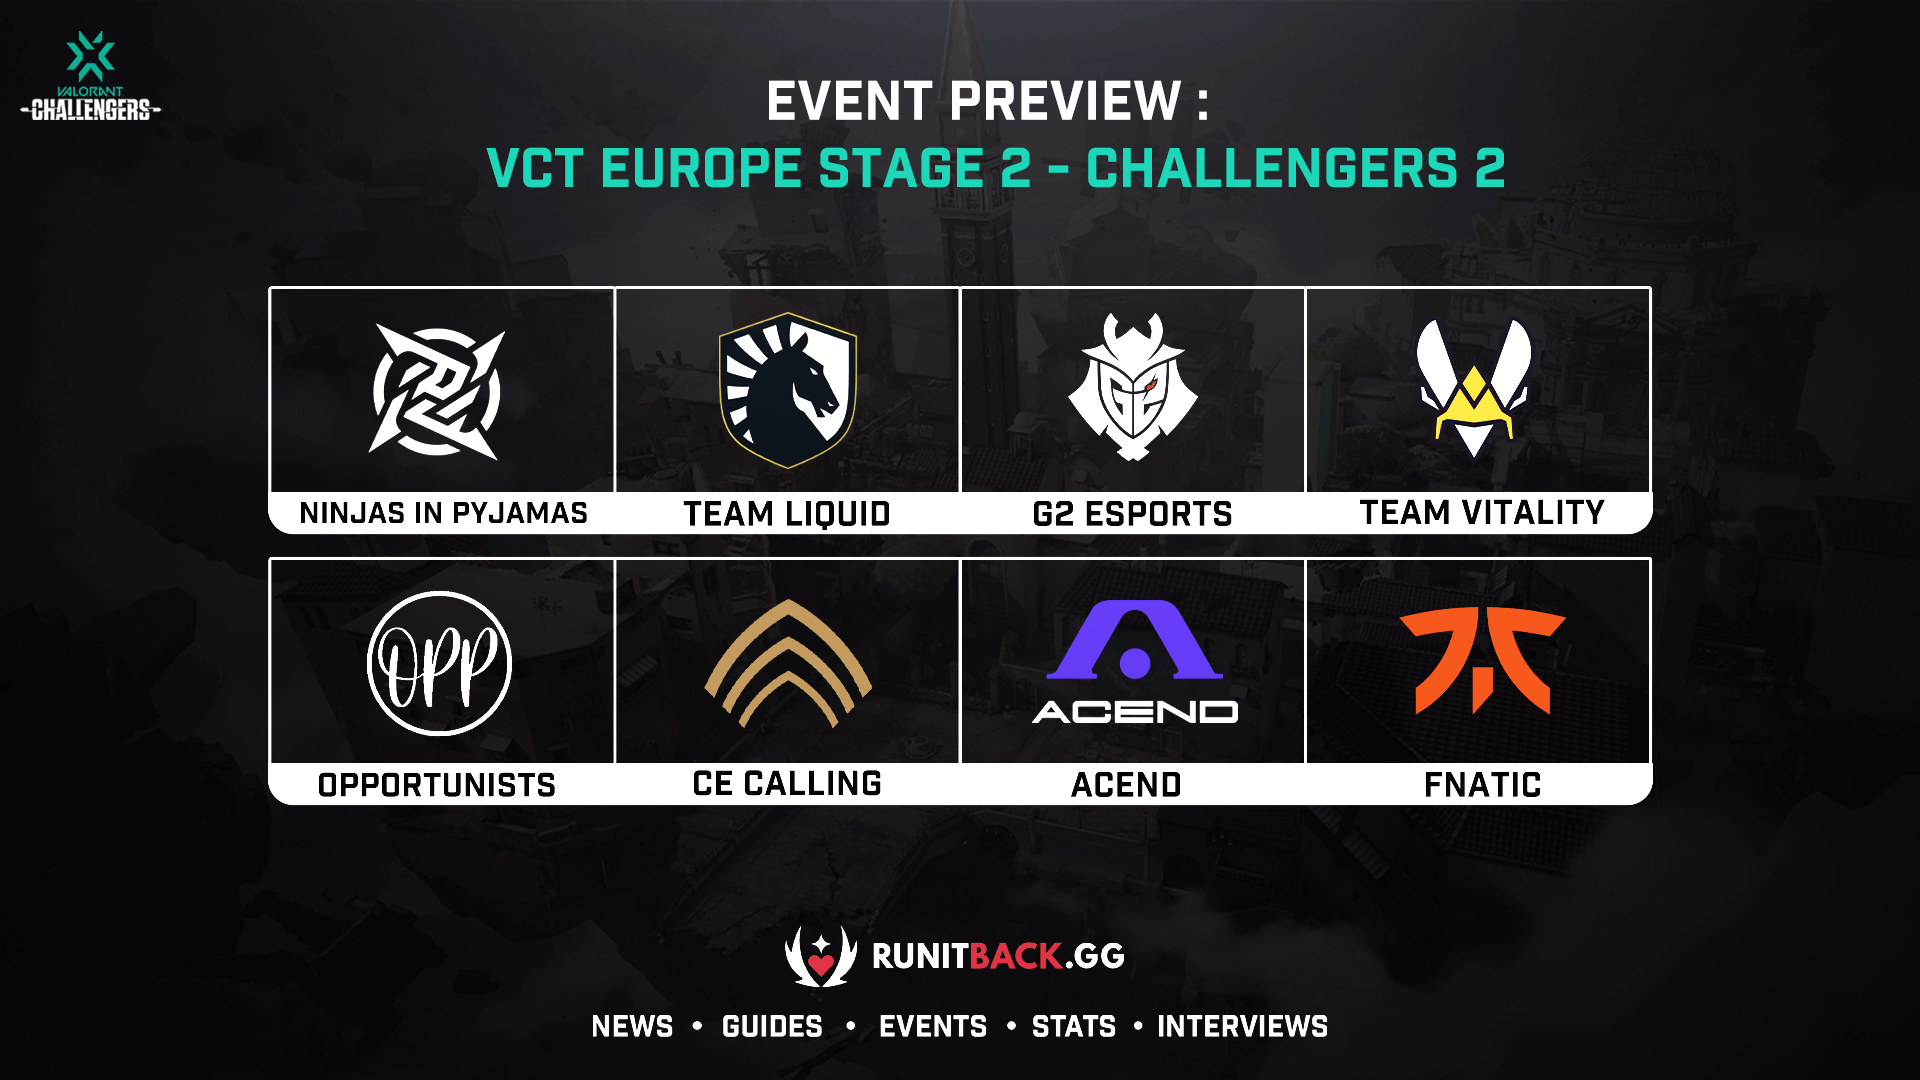 VCT Europe Challengers 2 main event bracket and preview